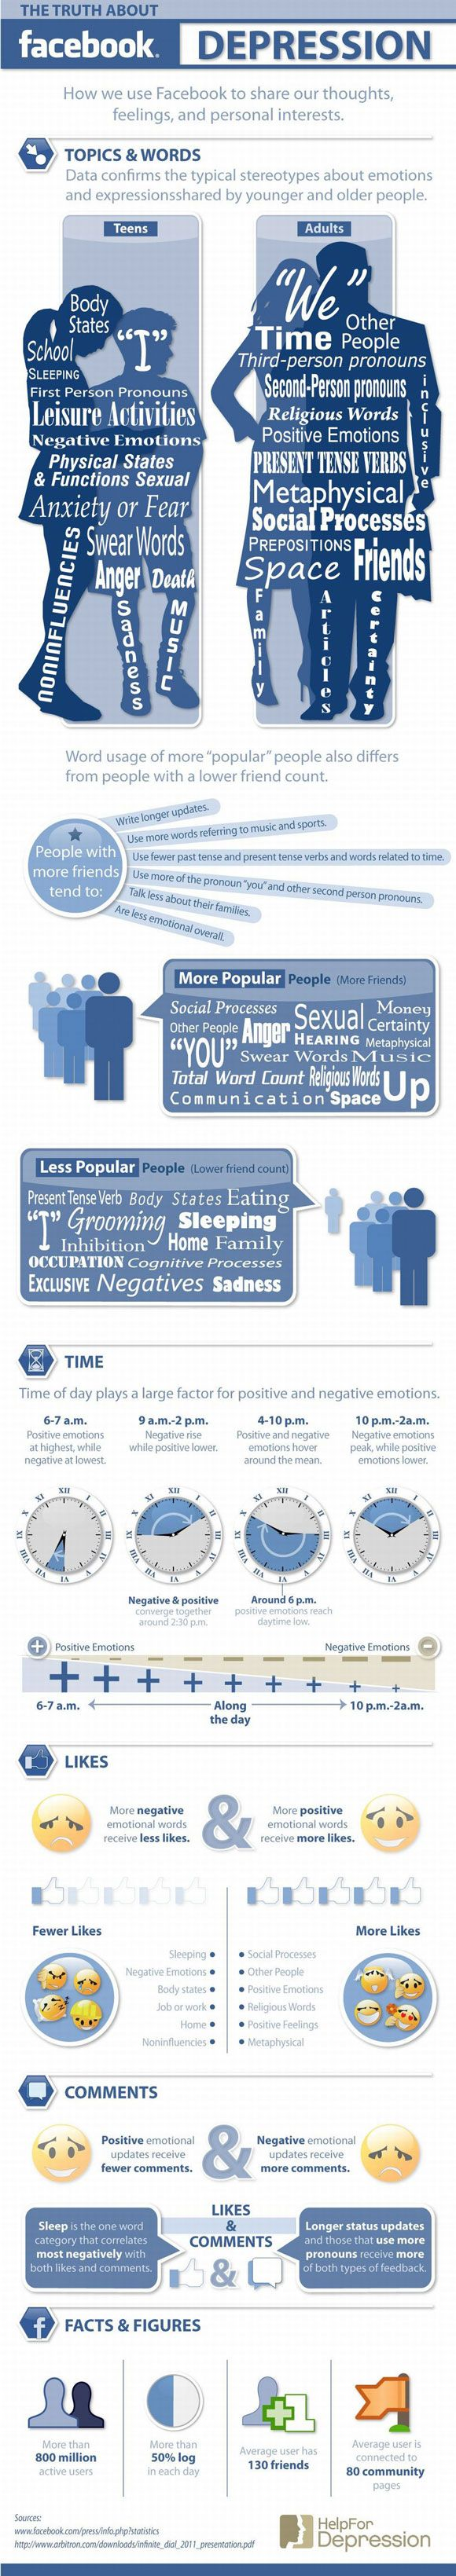 The Truth About Facebook Depression (Infographic)Thoughts, Facebook Like, Social Media Infographic, Truths, Facebook Depression, Socialmedia, Media Stuff, Medium, Feelings